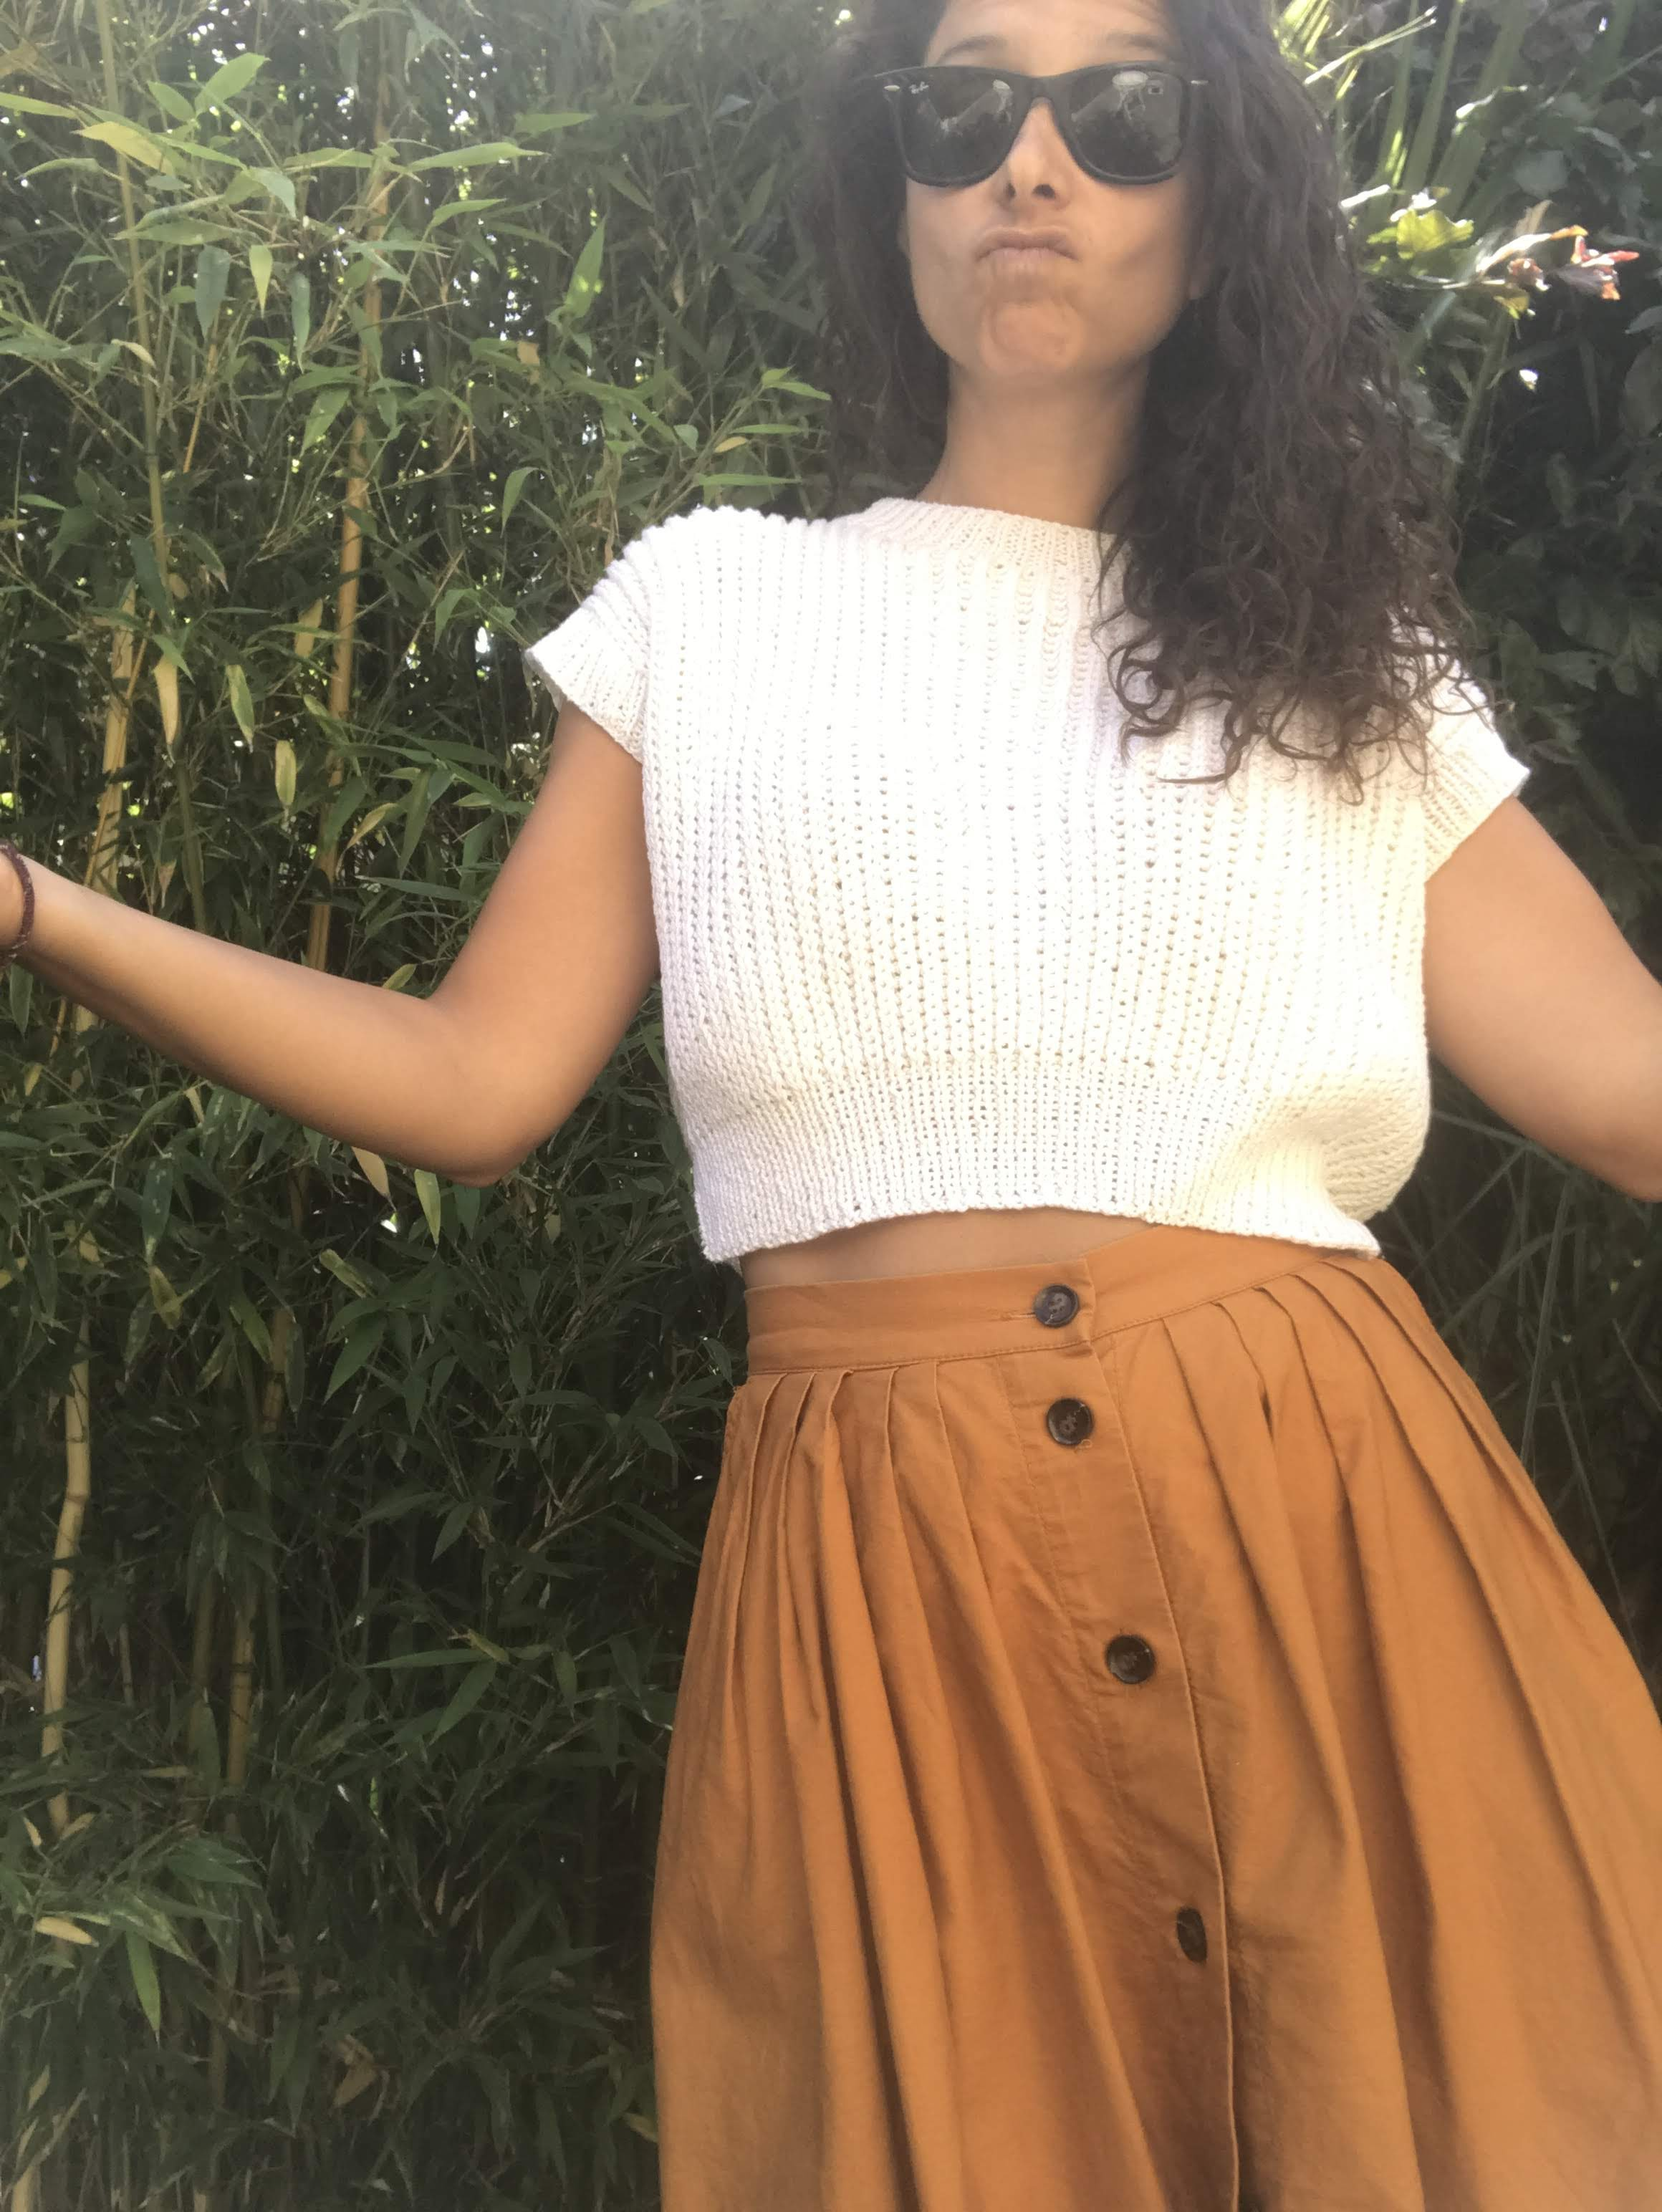 Giorgia is standing making a silly face and wearing the brand new jumper, paired with a pleated button down skirt.